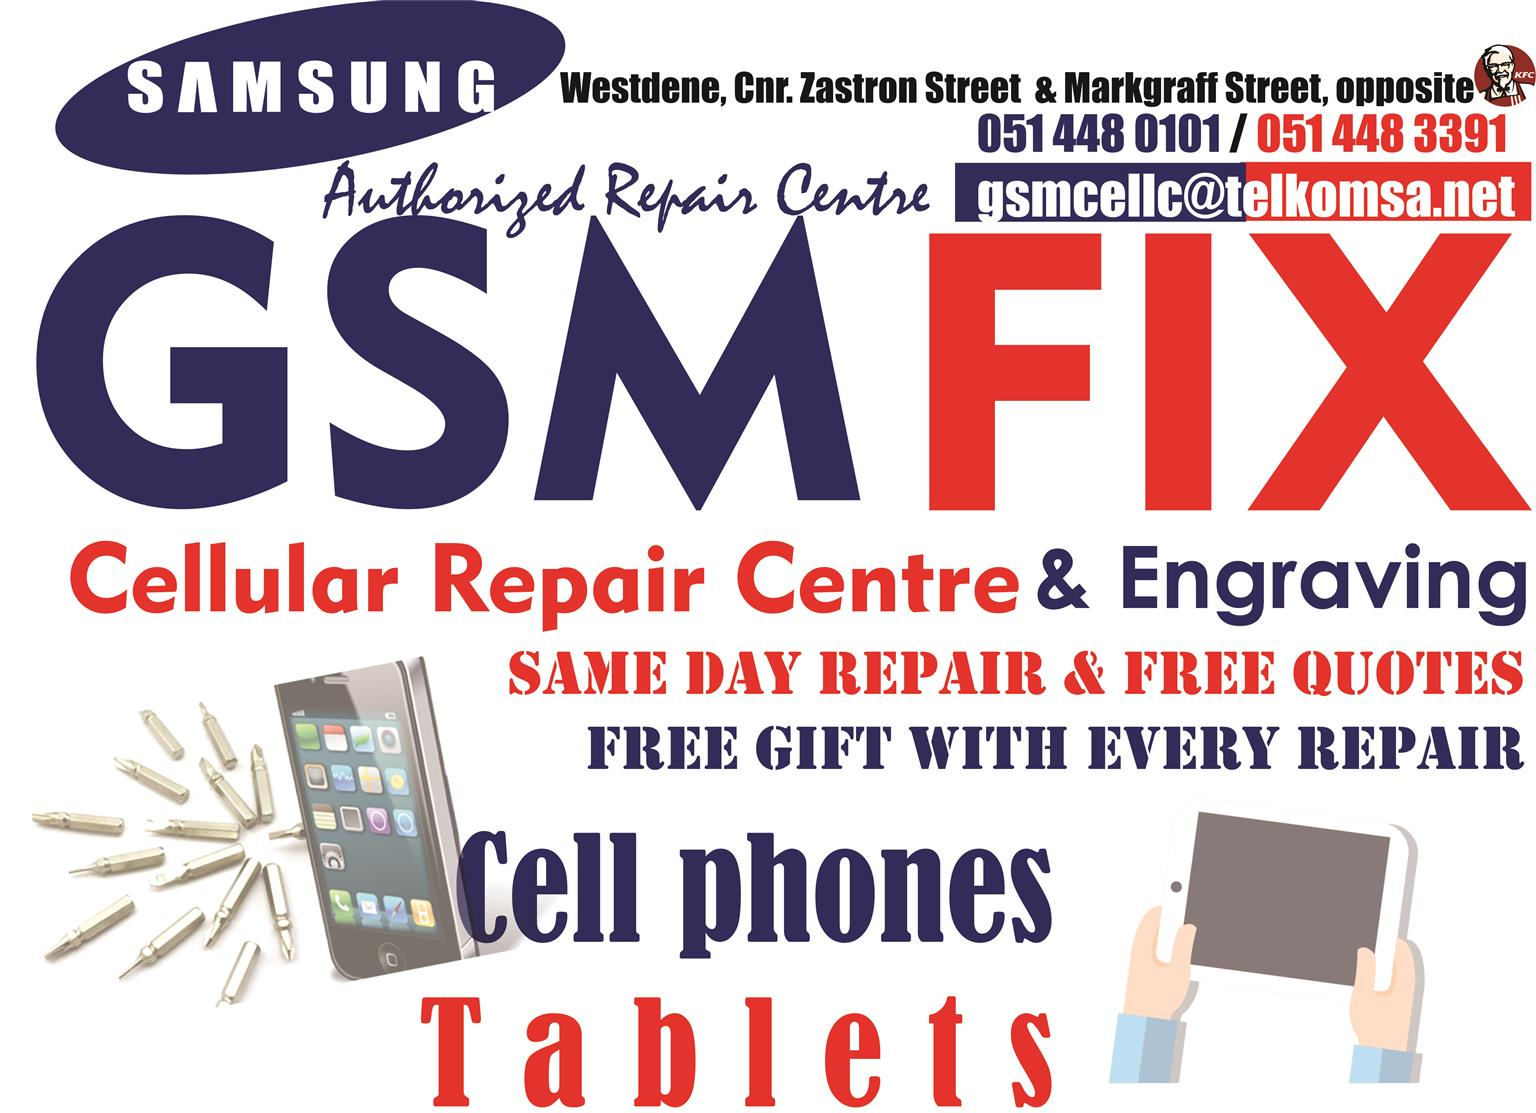 NR 1 Cellphone Repair Centre In Bloemfontein